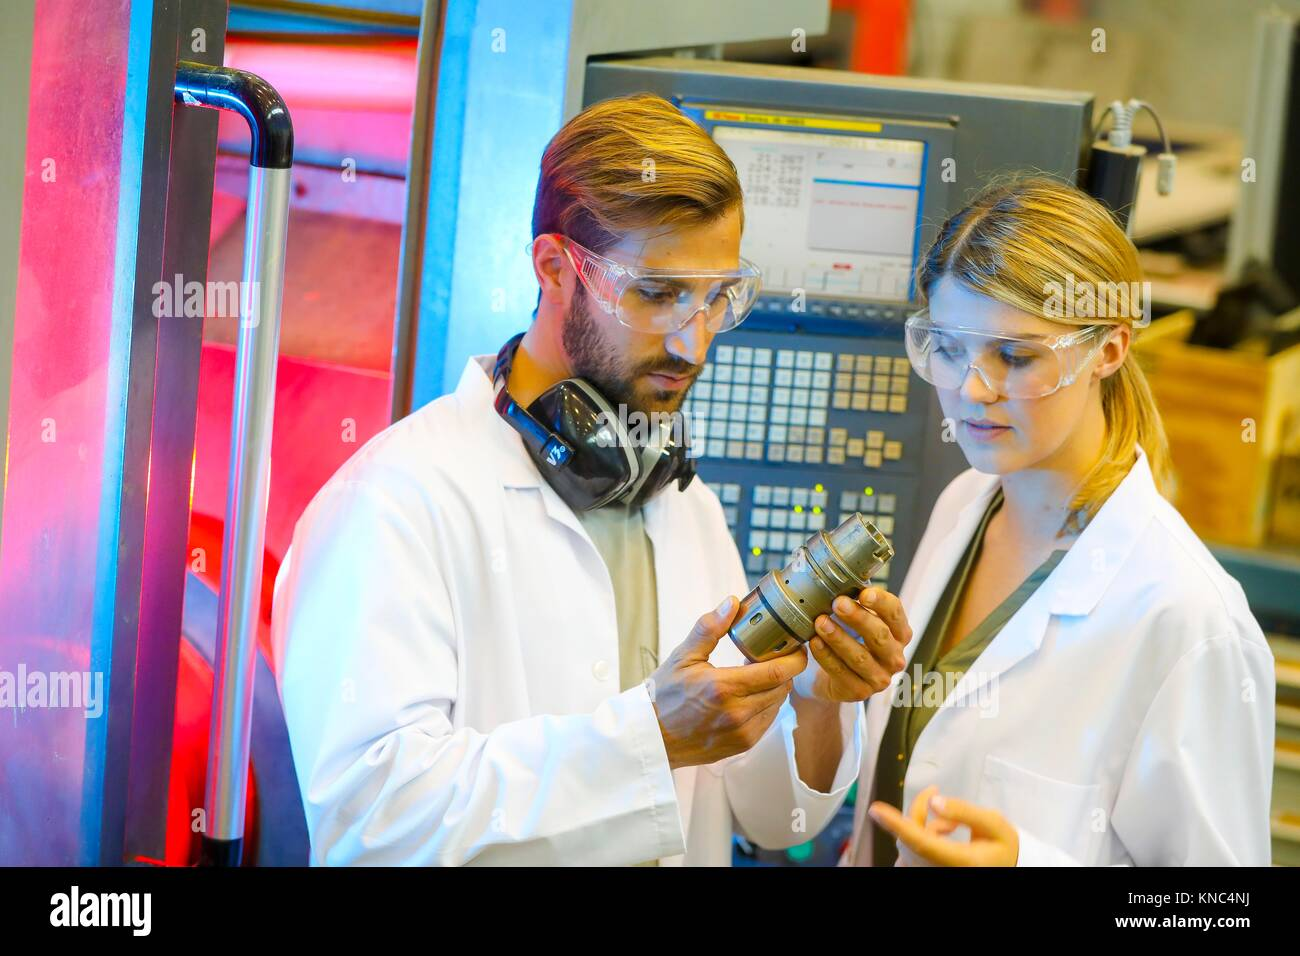 Machine tool for 5-axis milling, Researchers in machining center, Industry, Tecnalia Research & innovation, - Stock Image